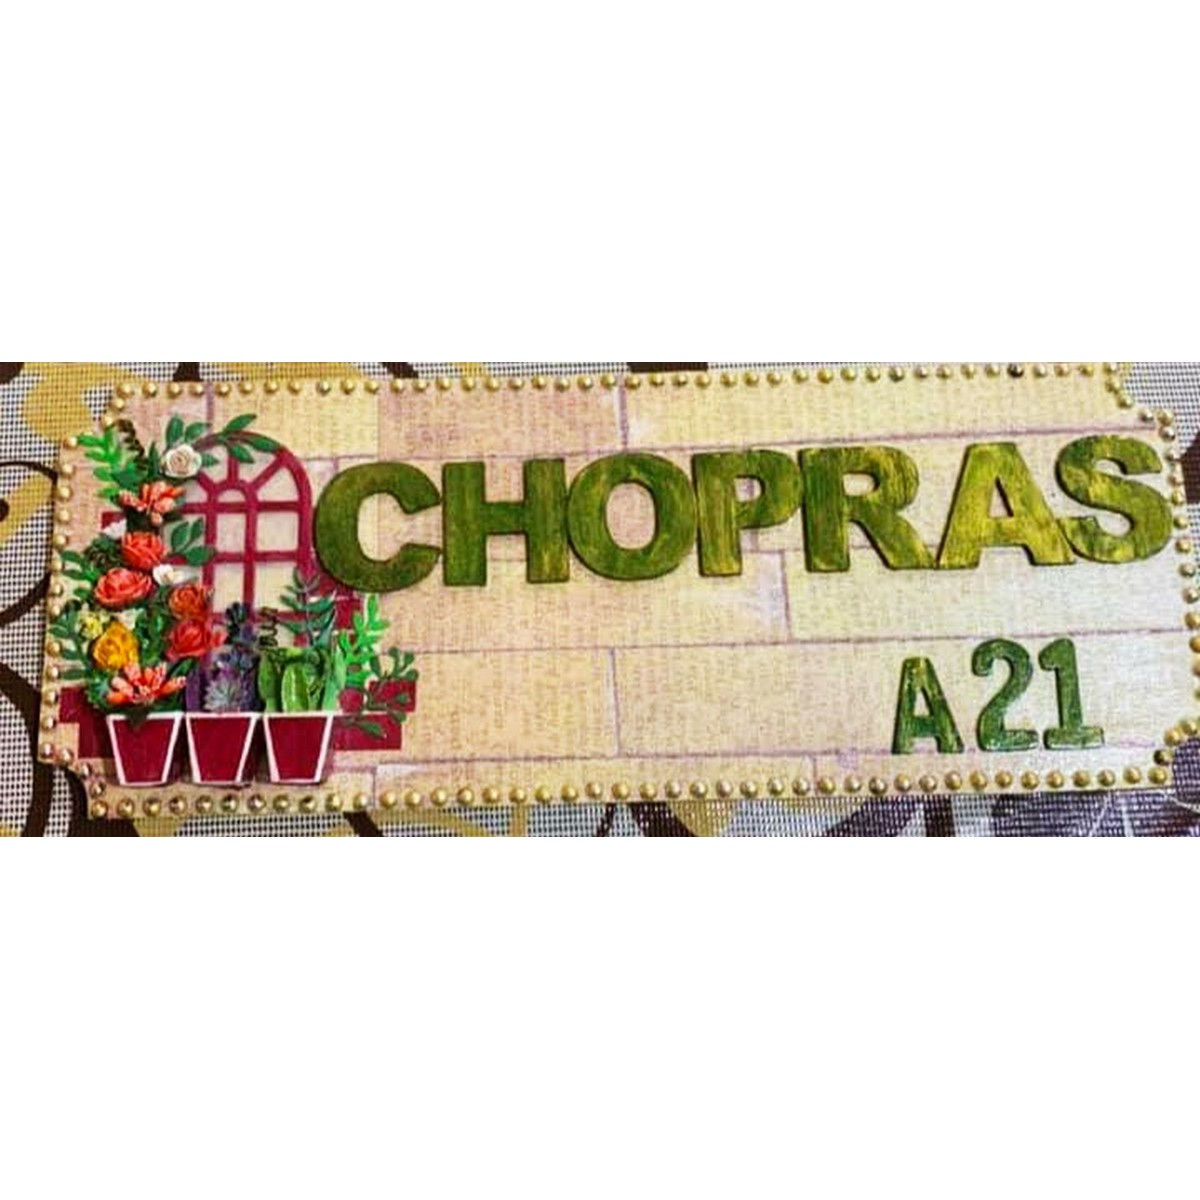 3d Arch window Name Plate with flower pots  3d Arch window Name Plate with flower pots